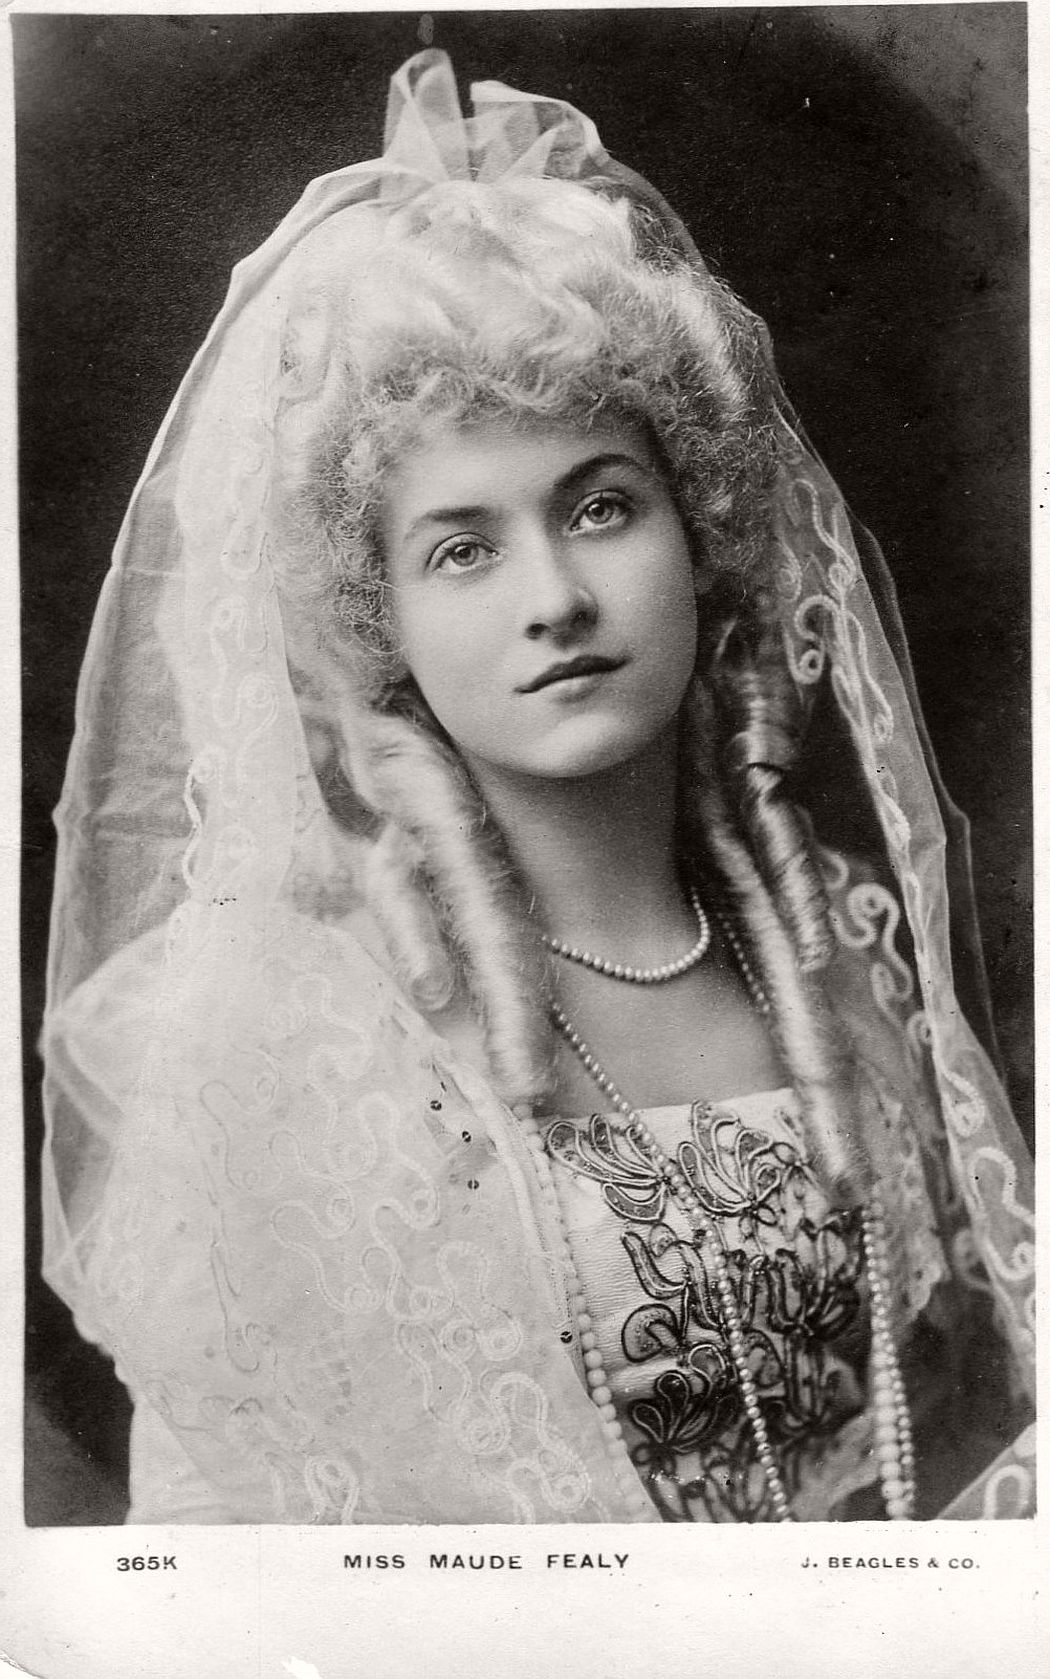 vintage-postcard-of-actress-miss-maude-fealy-1900s-early-xx-century-36